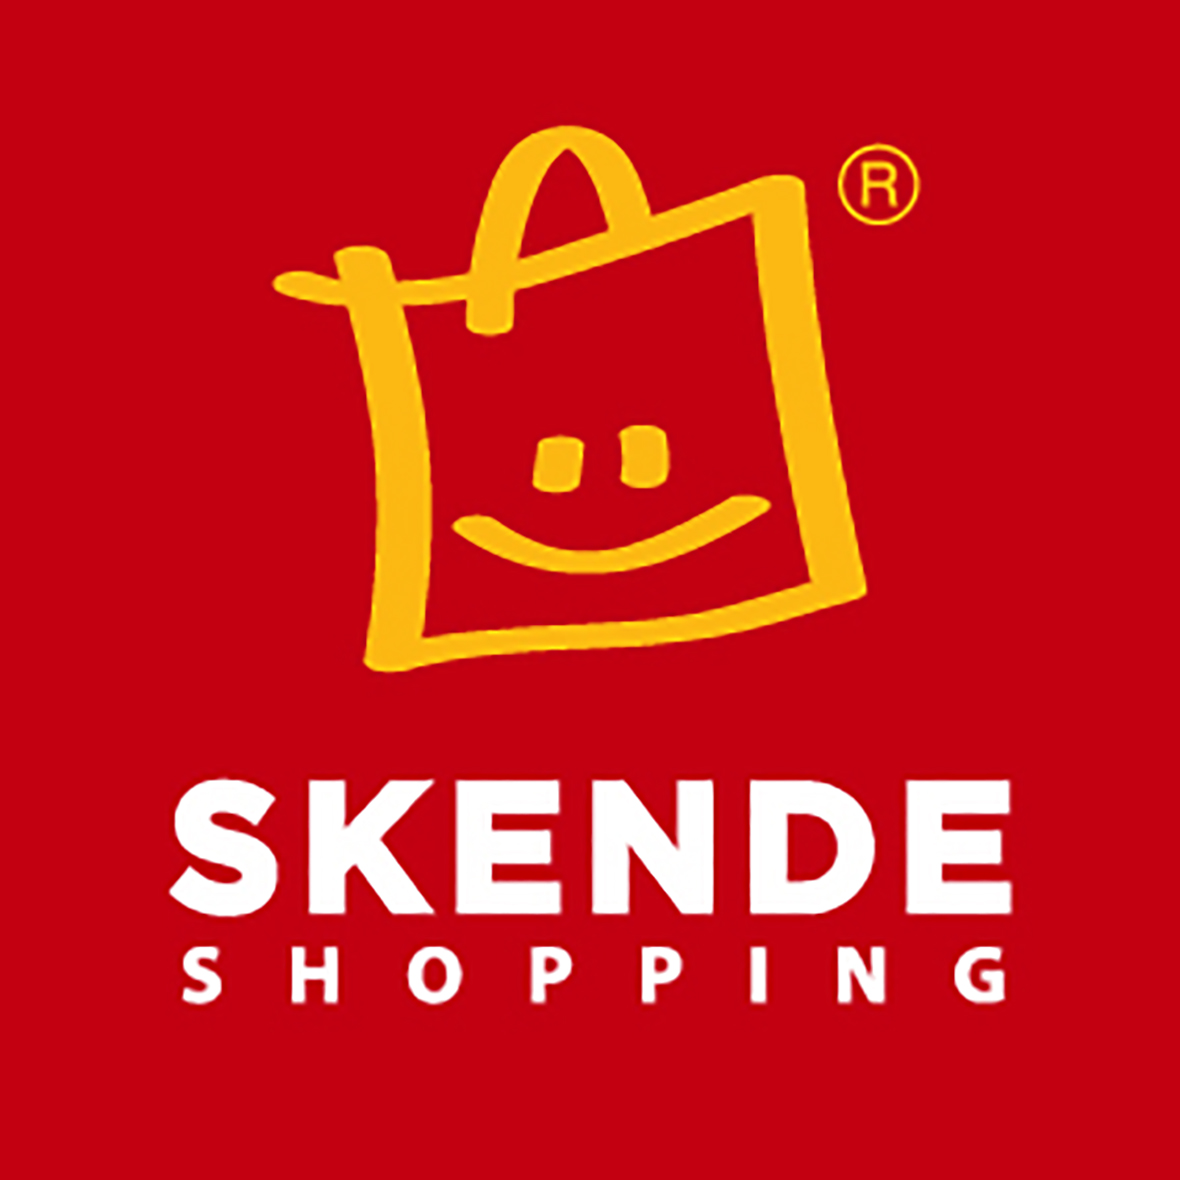 SKENDE Shopping